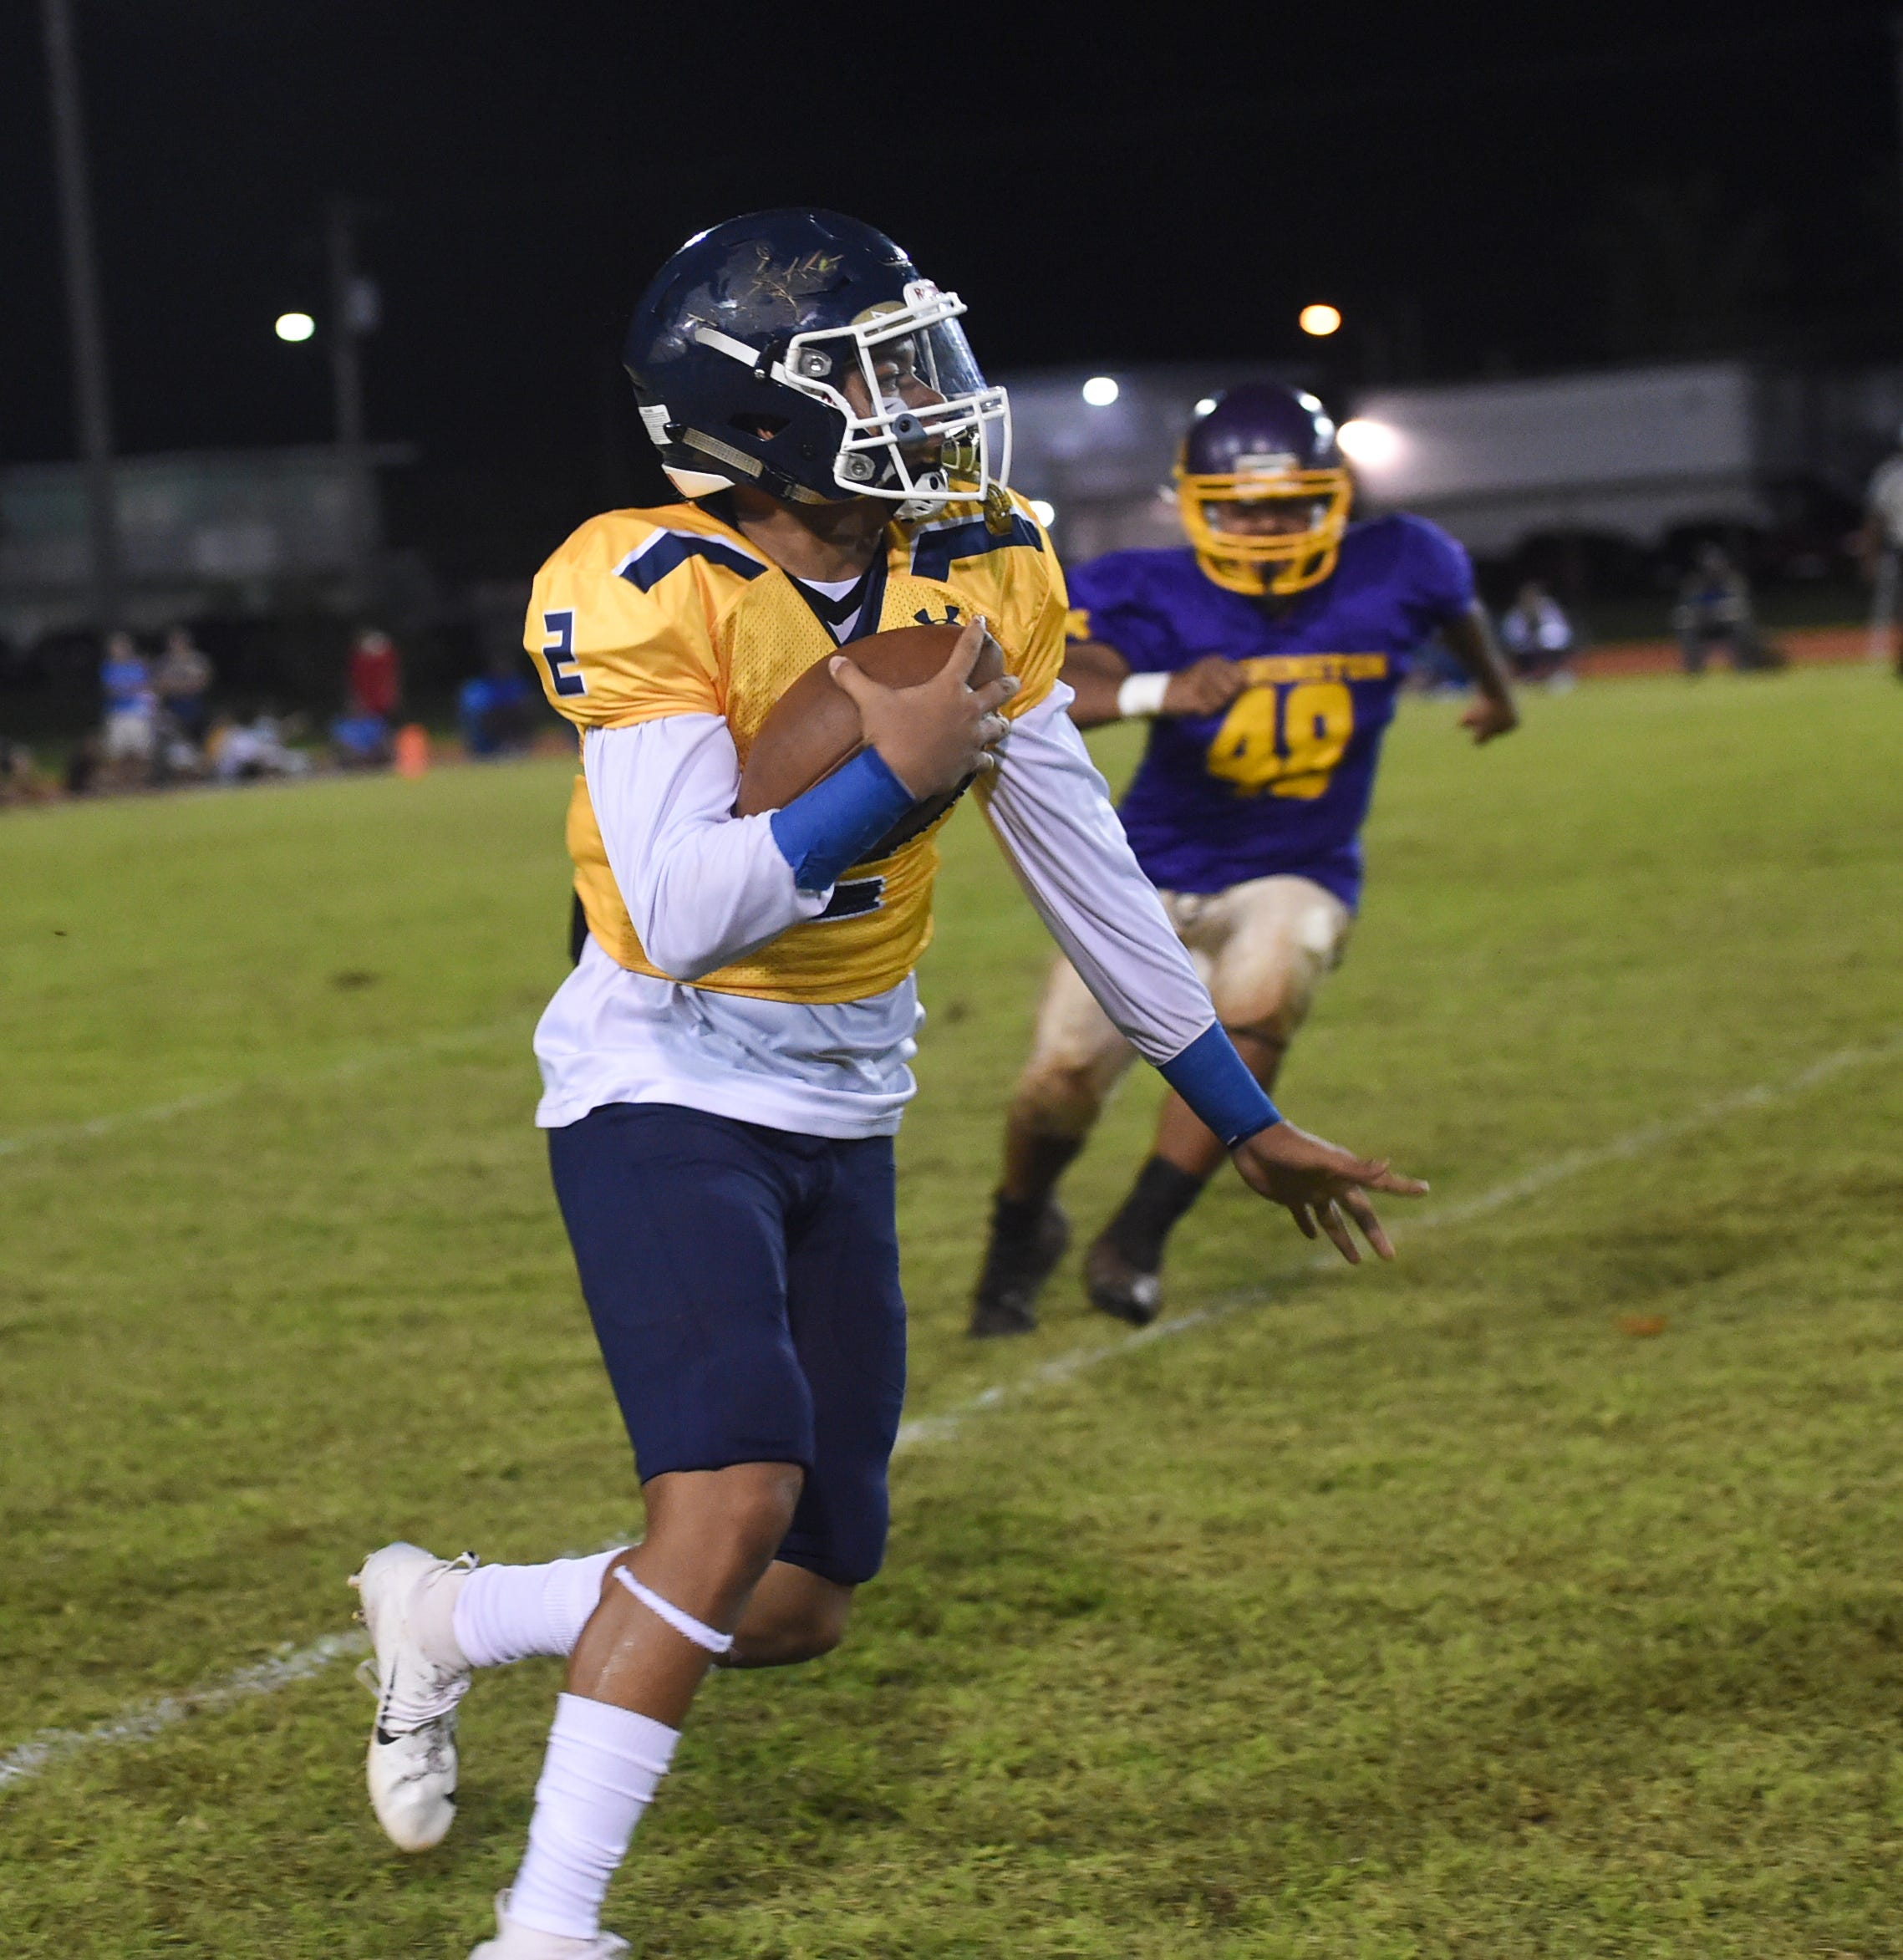 Guam High Panthers quarterback Travon Jacobs now plays for Ryan Rios and the Raptors - just for one game, the Triple J High School Football All-Star game Nov. 9.